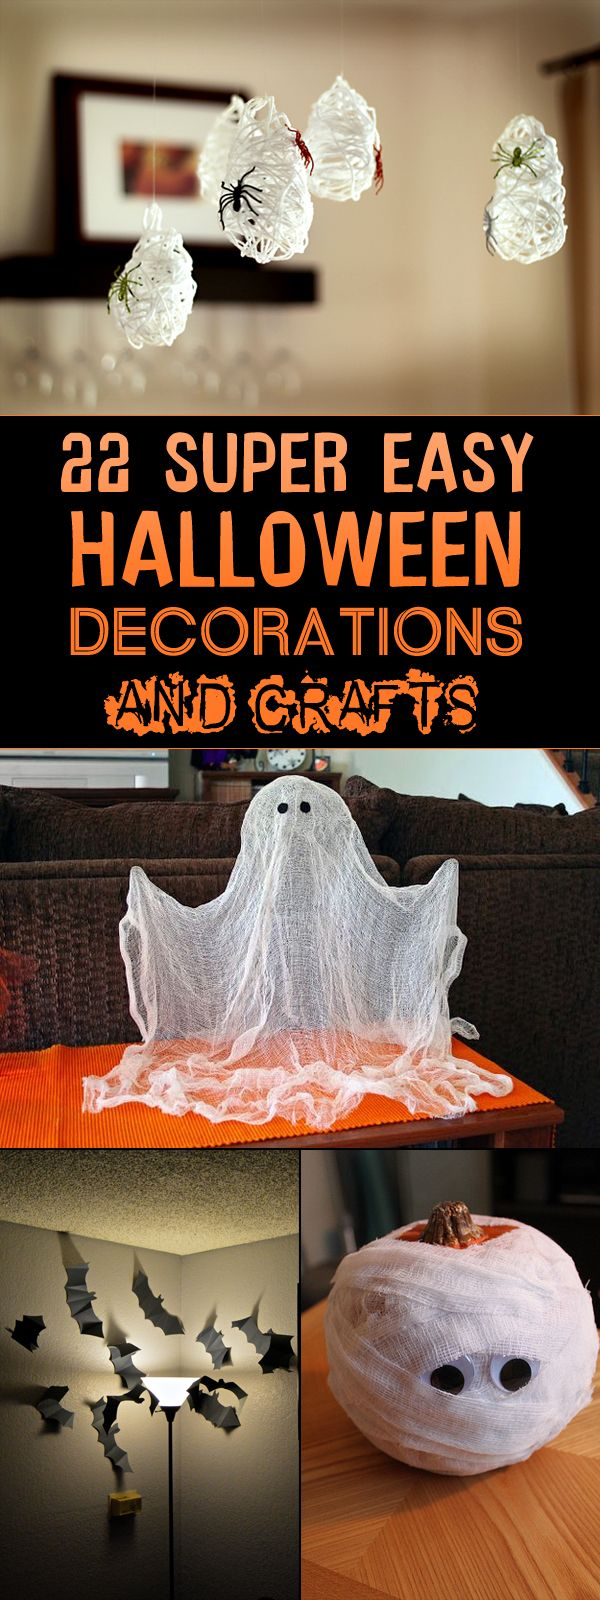 22 super easy halloween decorations and crafts you can make yourself - Cheap Do It Yourself Halloween Decorations